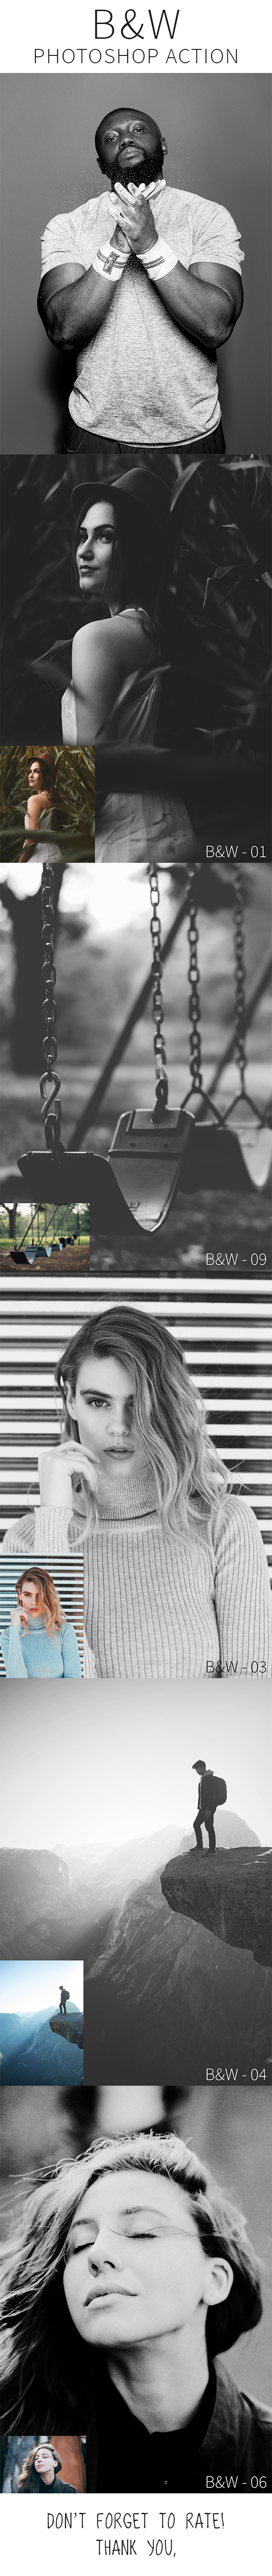 10 B&W Photoshop Action - Photo Effects Actions